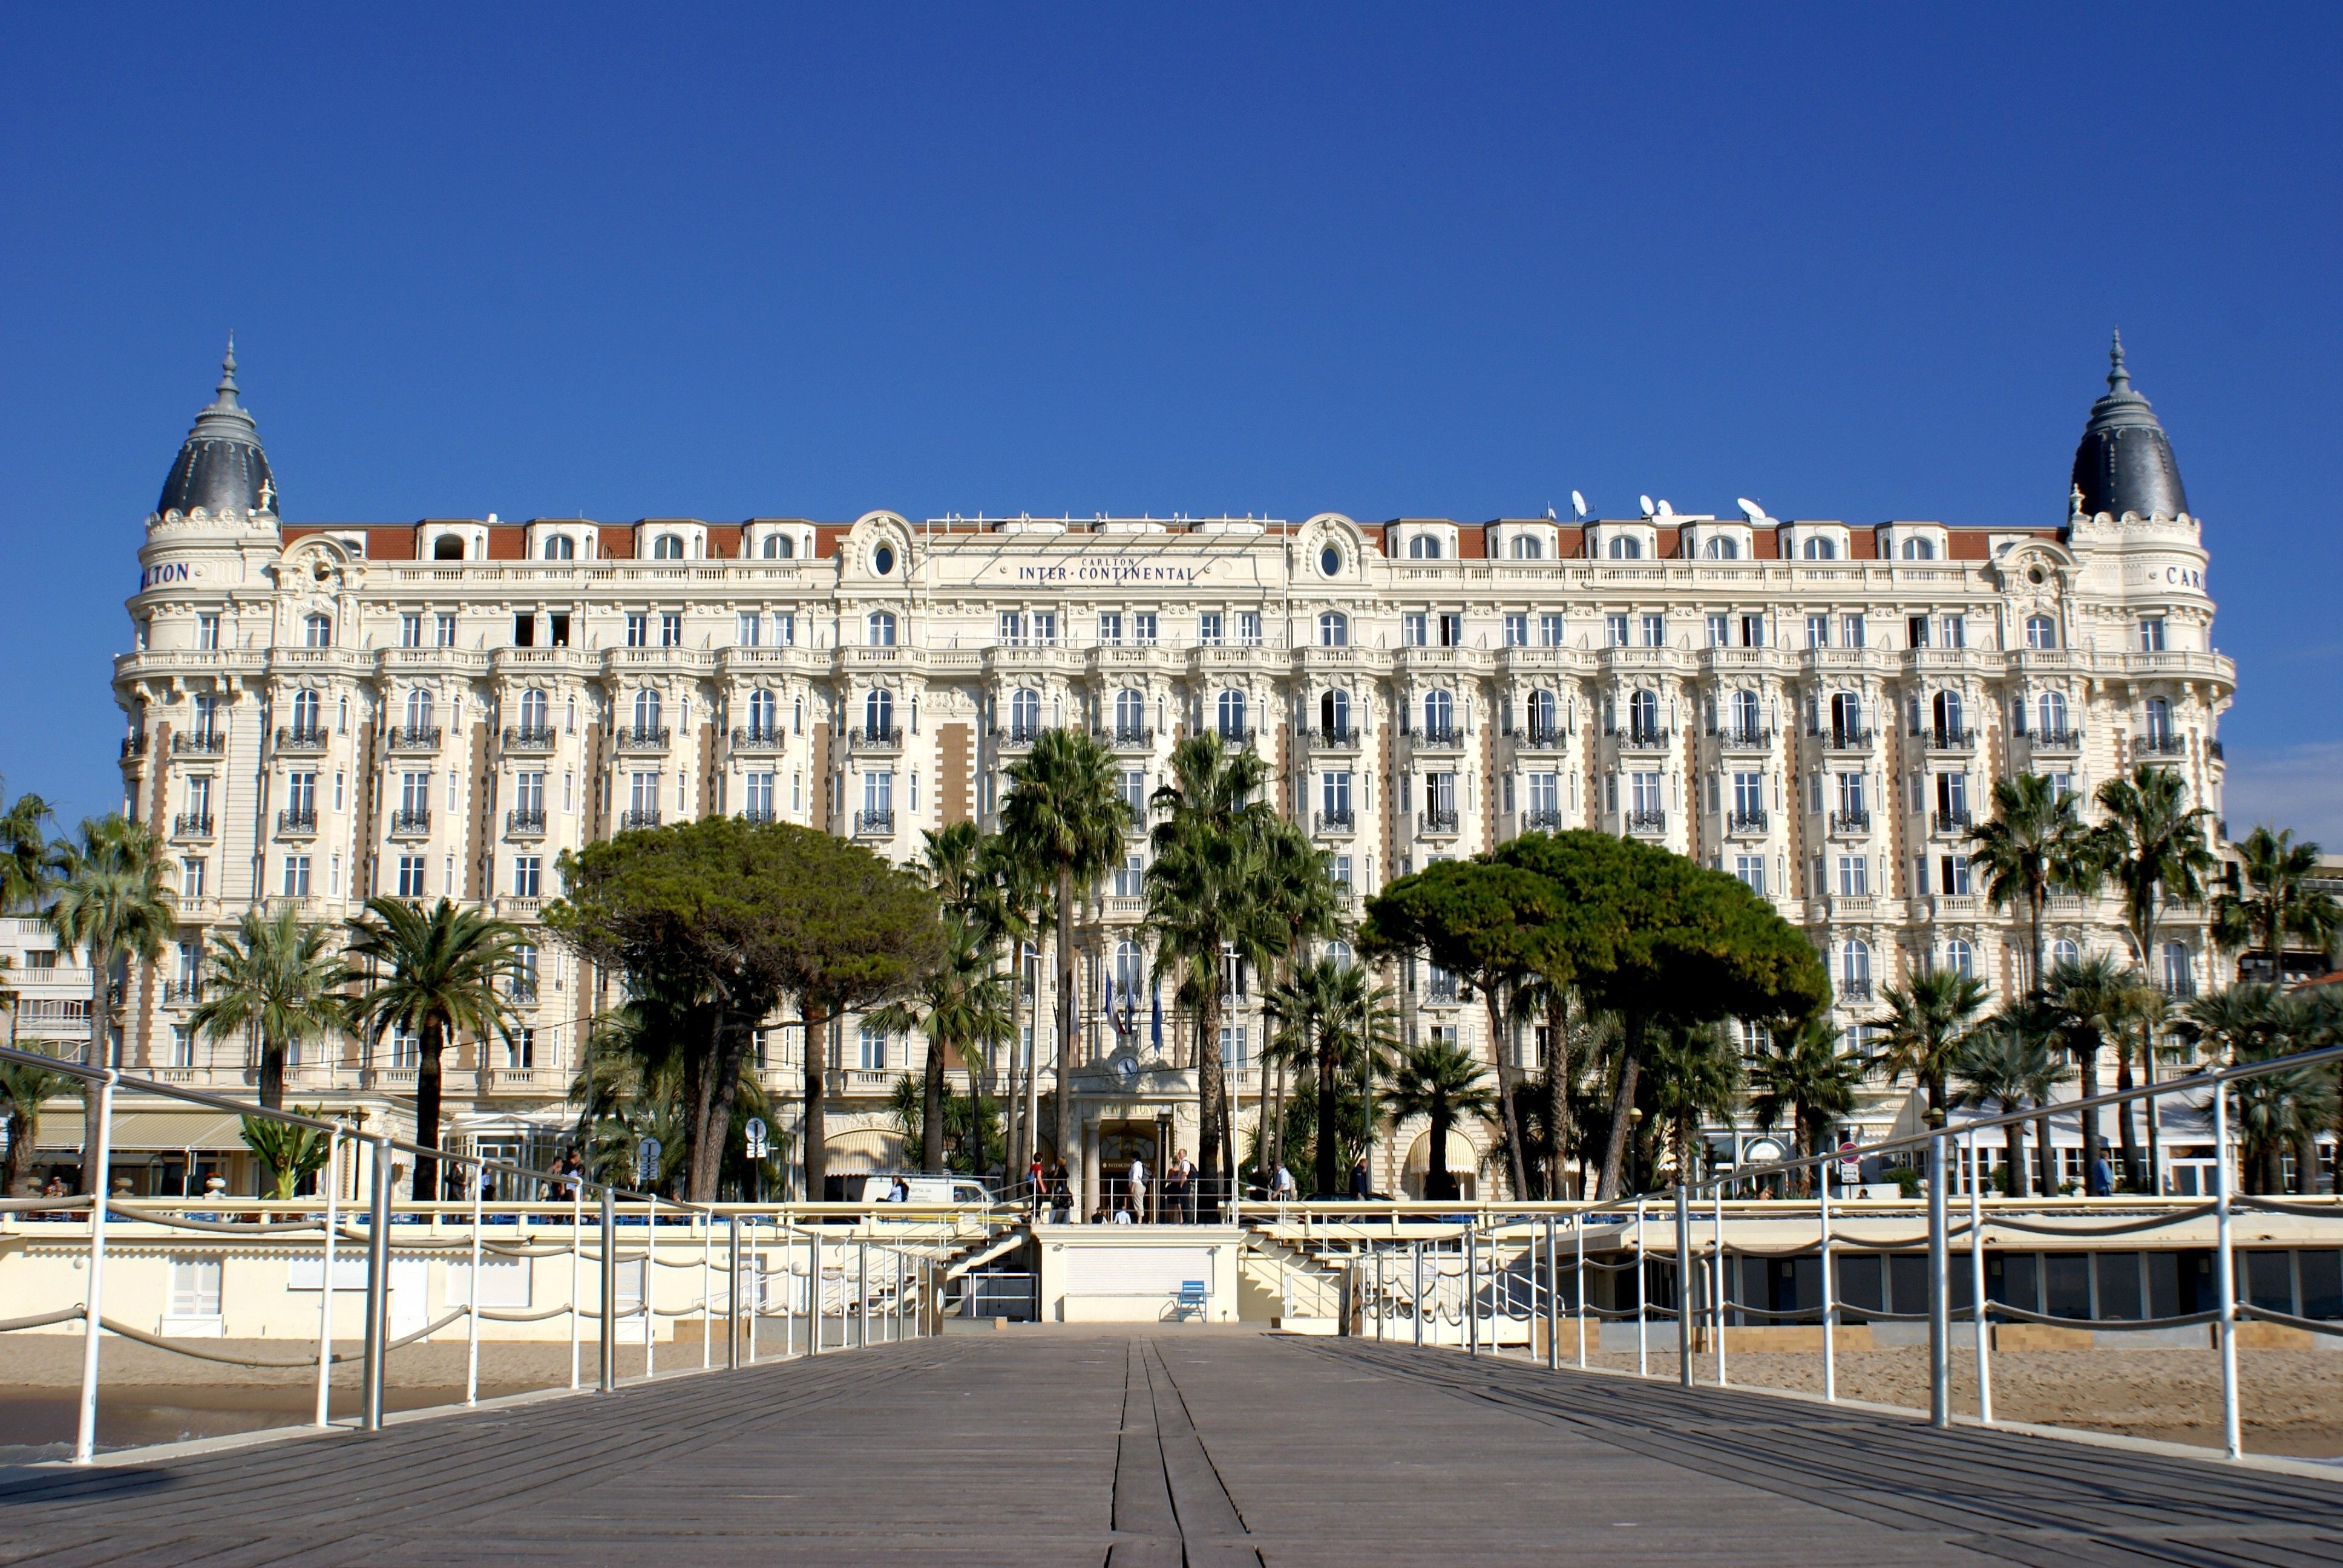 Hotels on the beach in Cannes, France wallpapers and image